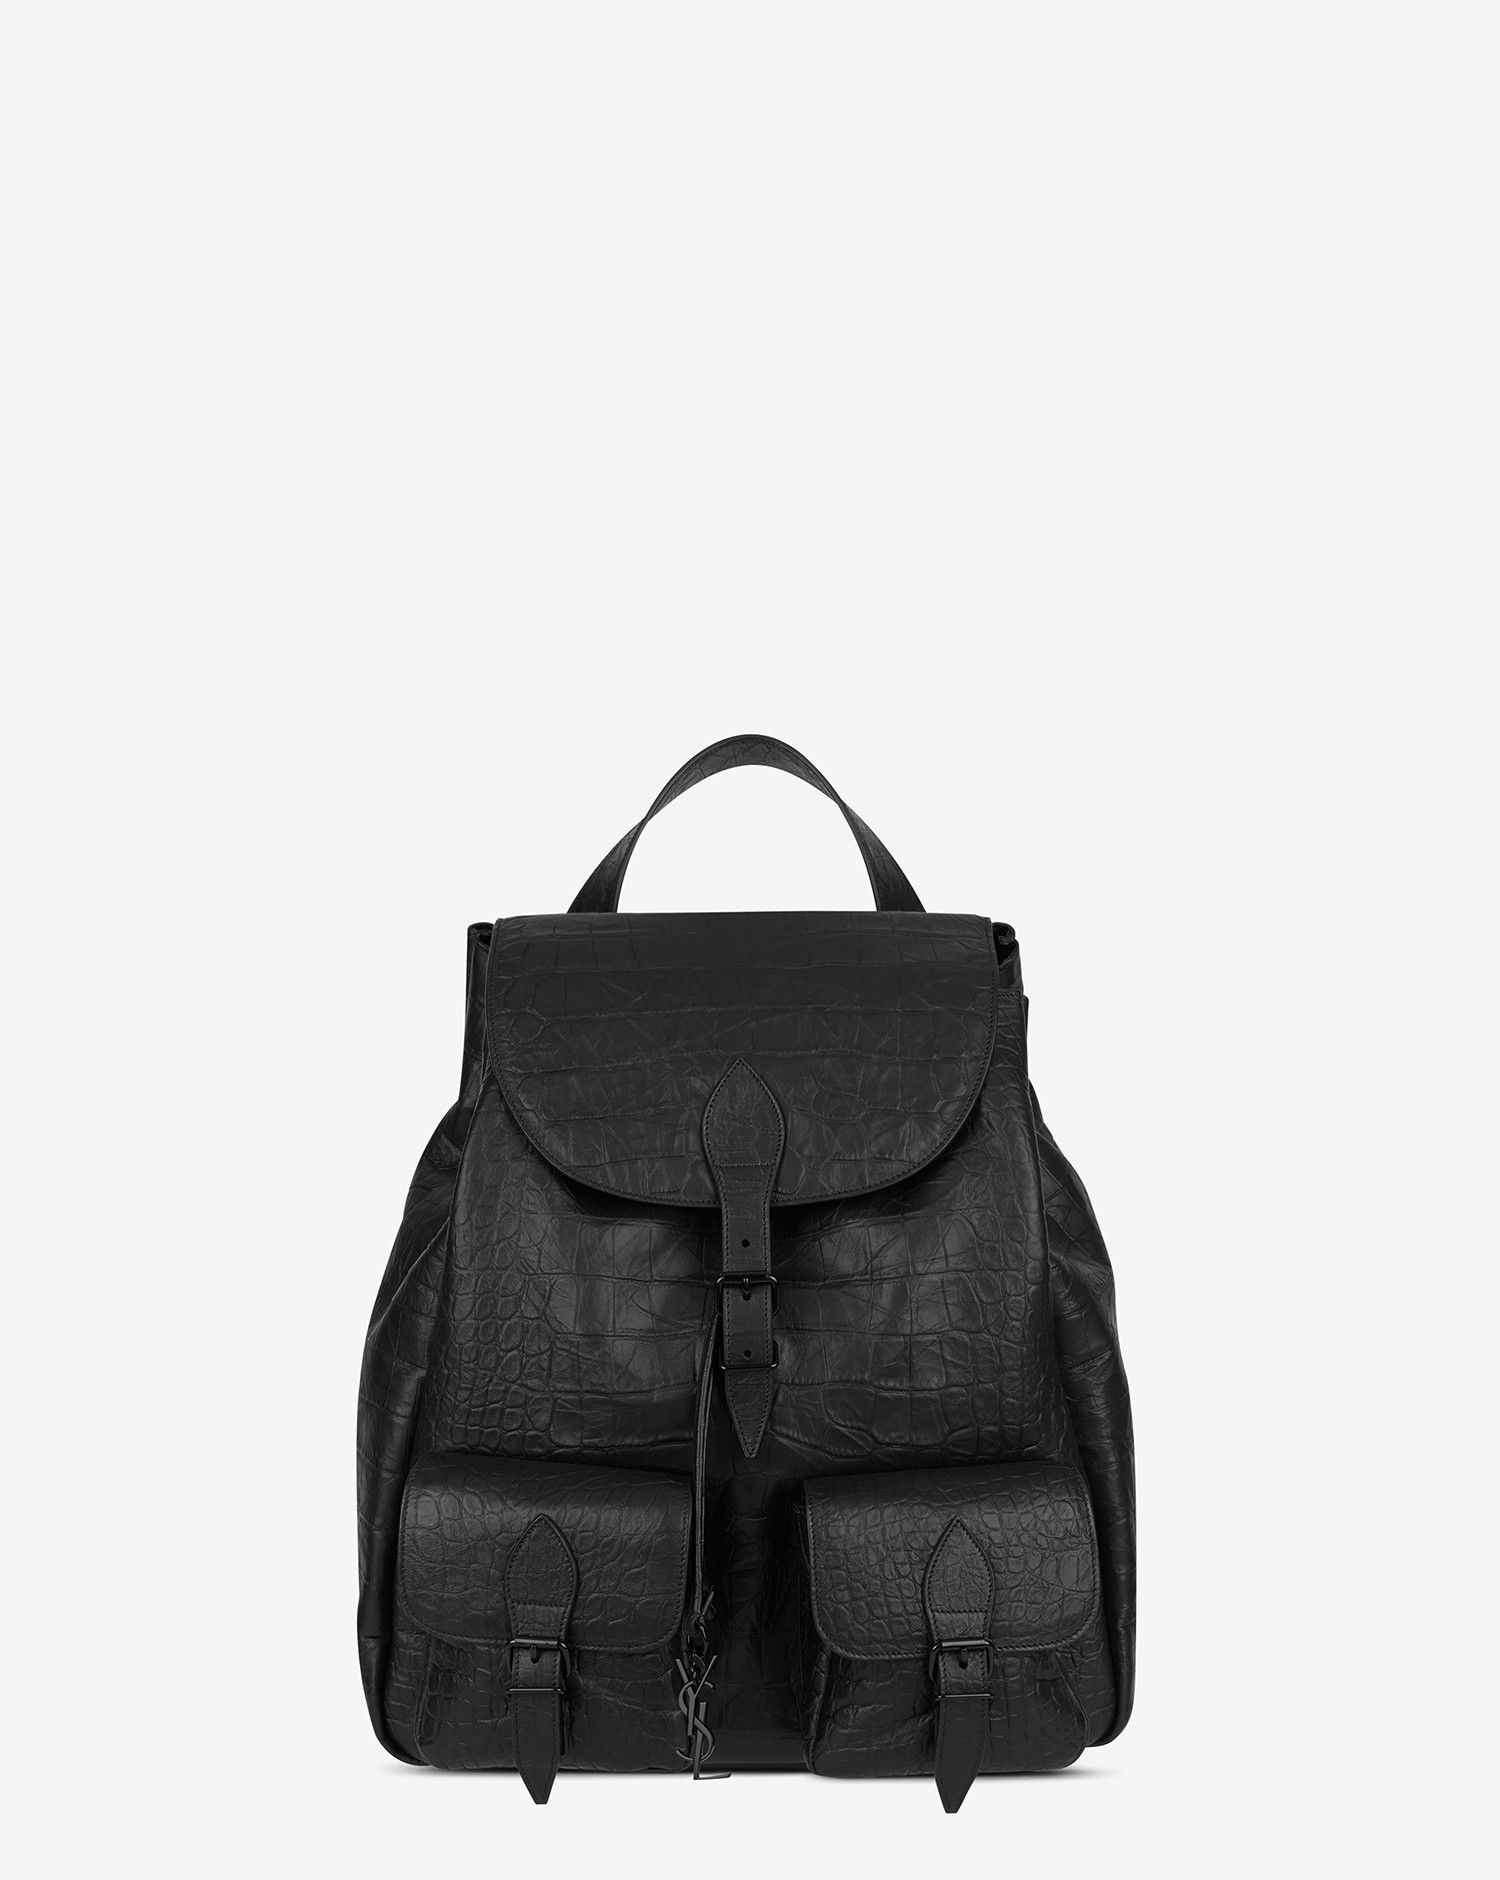 68f0e25a061 Saint Laurent FESTIVAL Backpack In Black Crocodile Embossed Leather | YSL .com